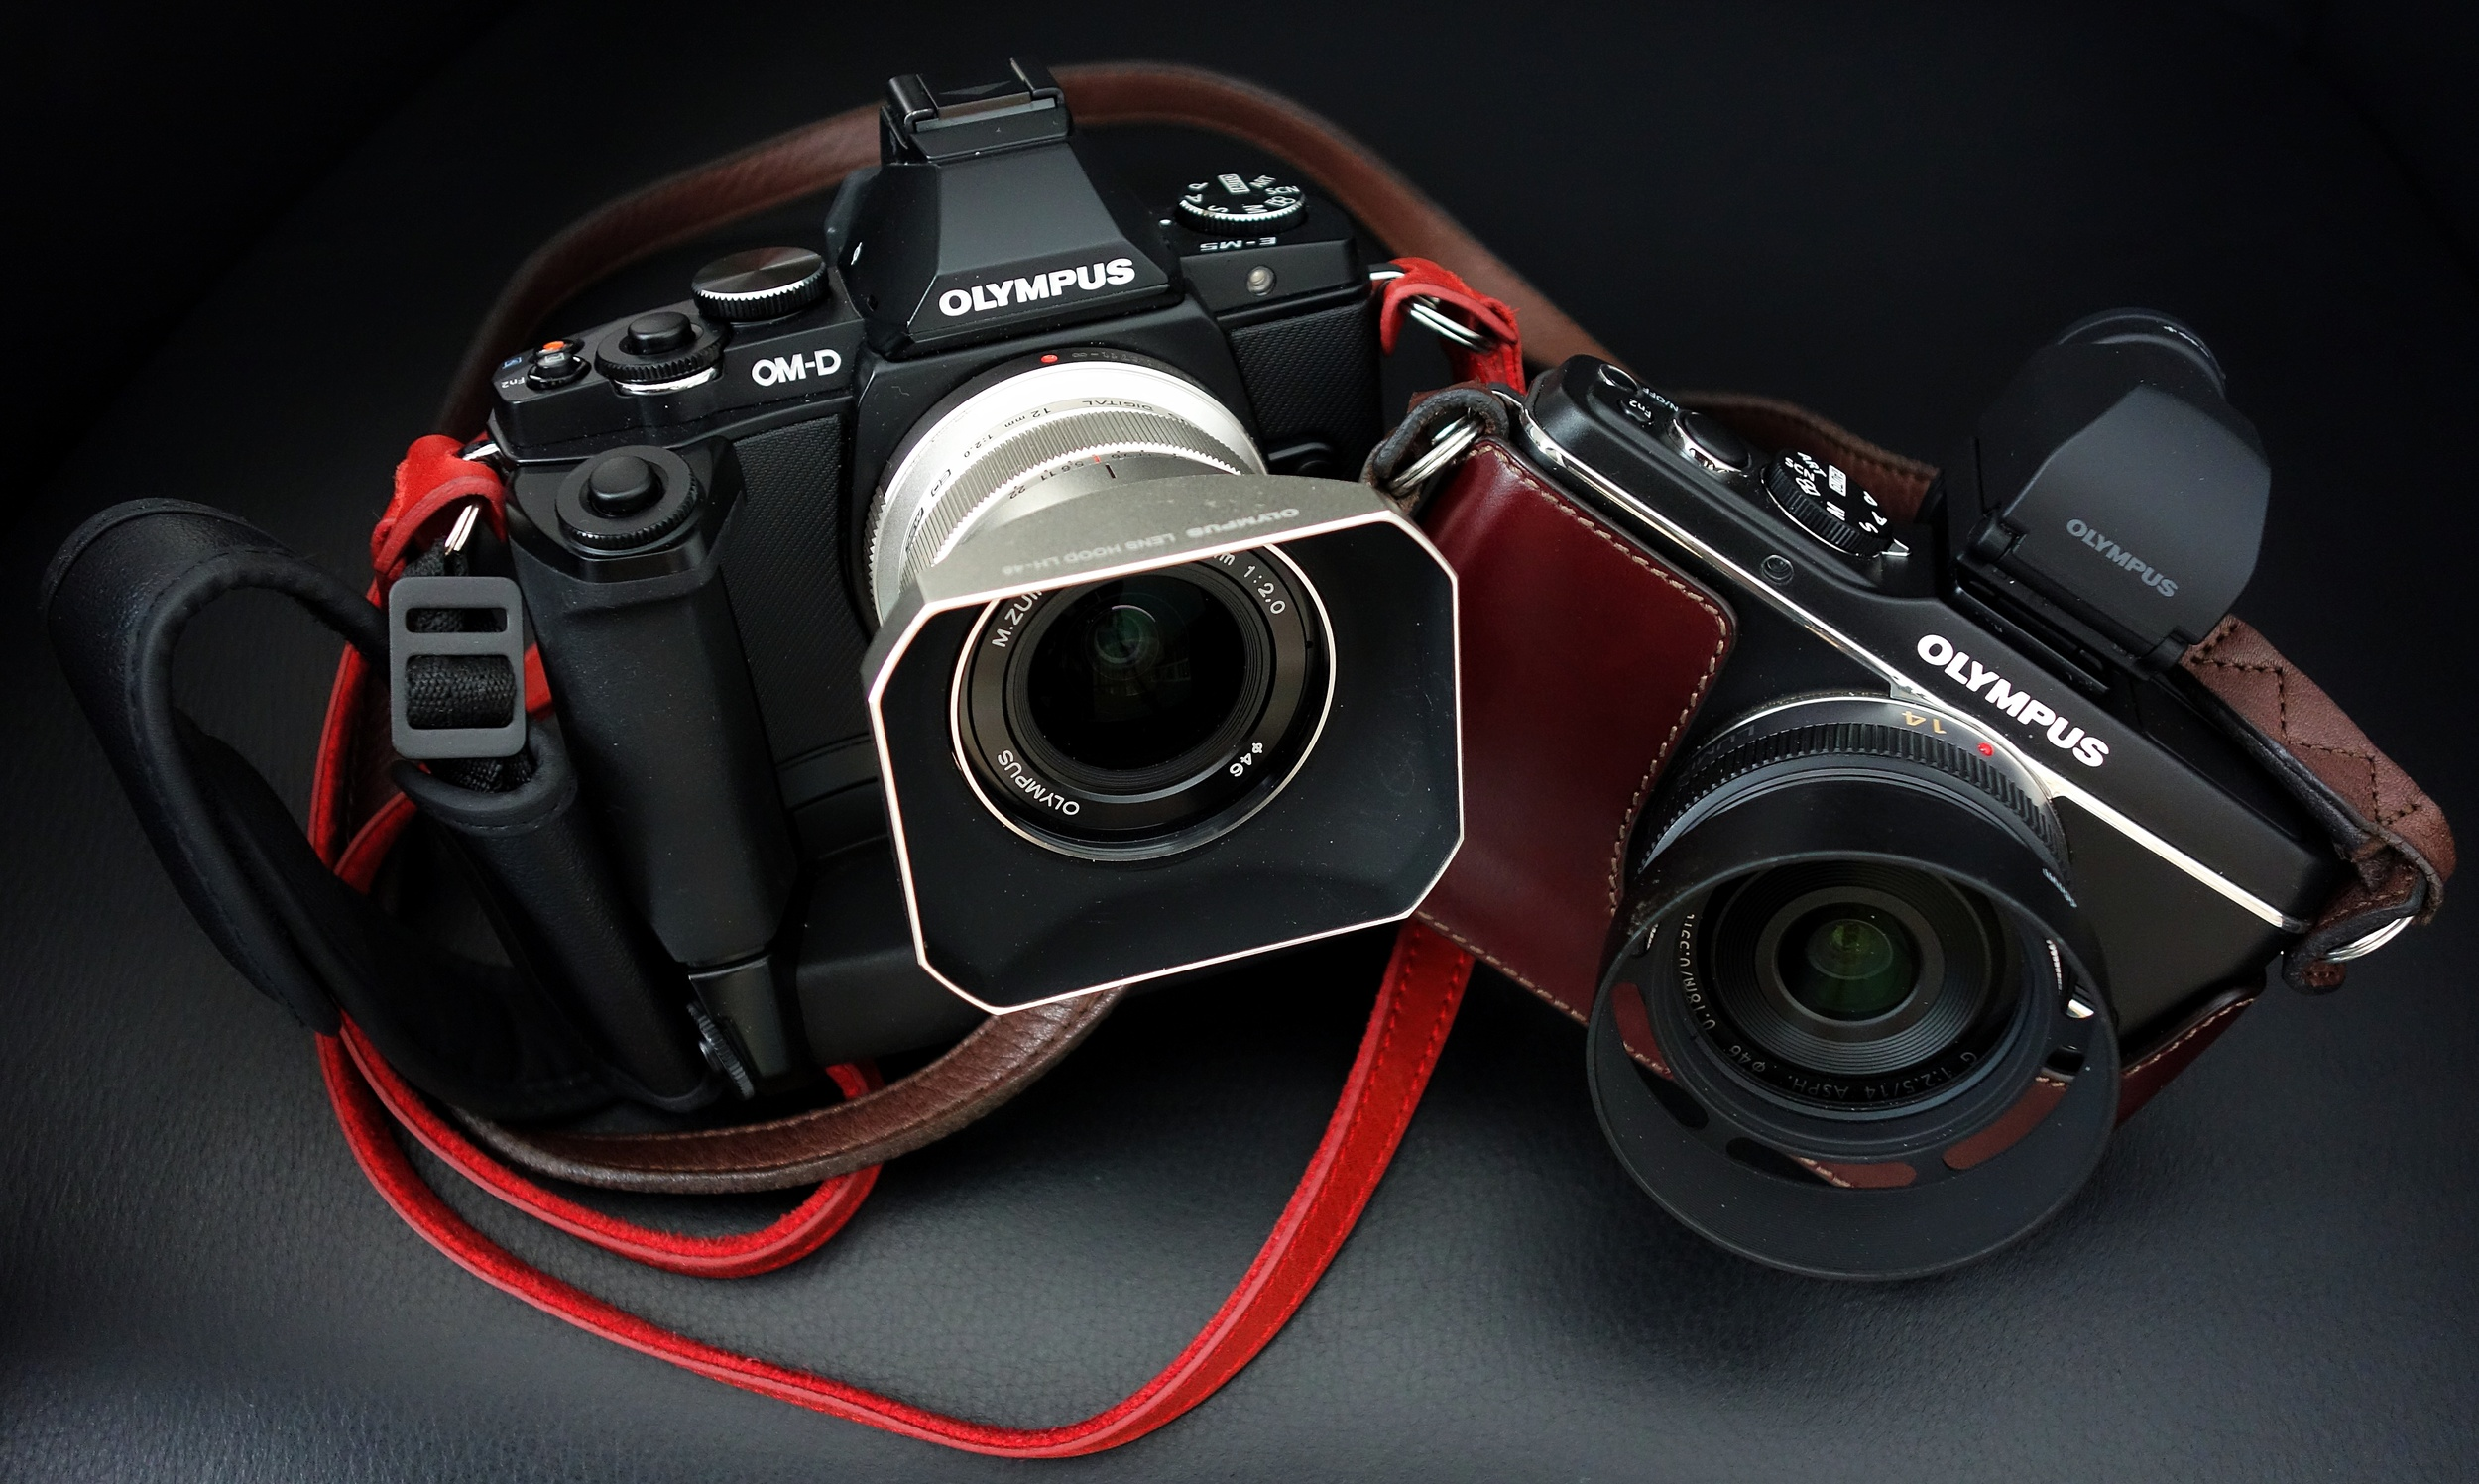 Sporting a magnesium alloy body, weather sealing, a 16MP sensor, 5-axis in-body image stabilisation, tilting touchscreen and electronic viewfinder, 2011's Micro Four-Thirds OM-D E-M5 was a mirror-less tribute to the legendary OM line of film cameras and 2012's Camera of the Year. Seen here with handgrip, battery holder, 12mm f2 lens and it's sister, the E-P3